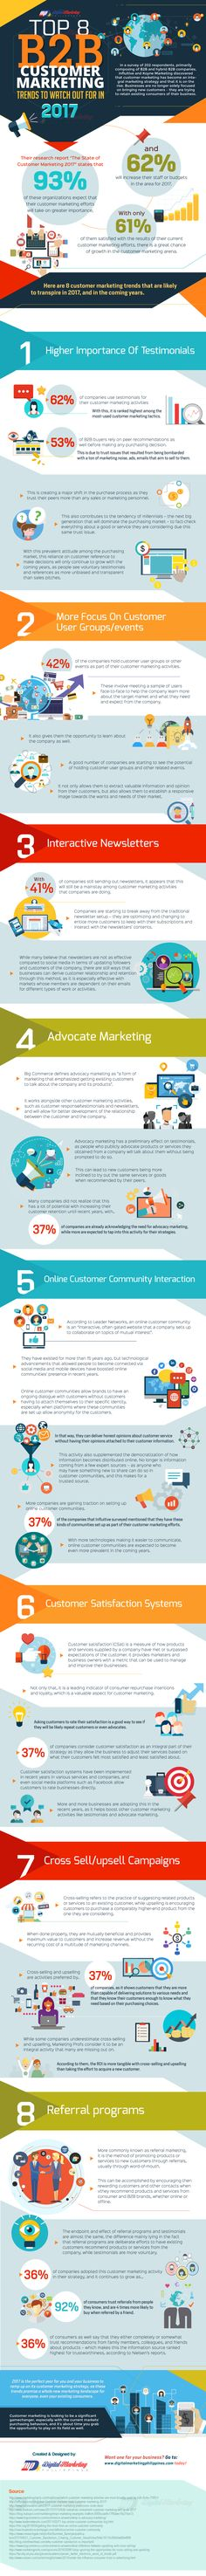 """8 Customer Marketing Tips for B2B Brands [Infographic] (By @HubSpot)"""